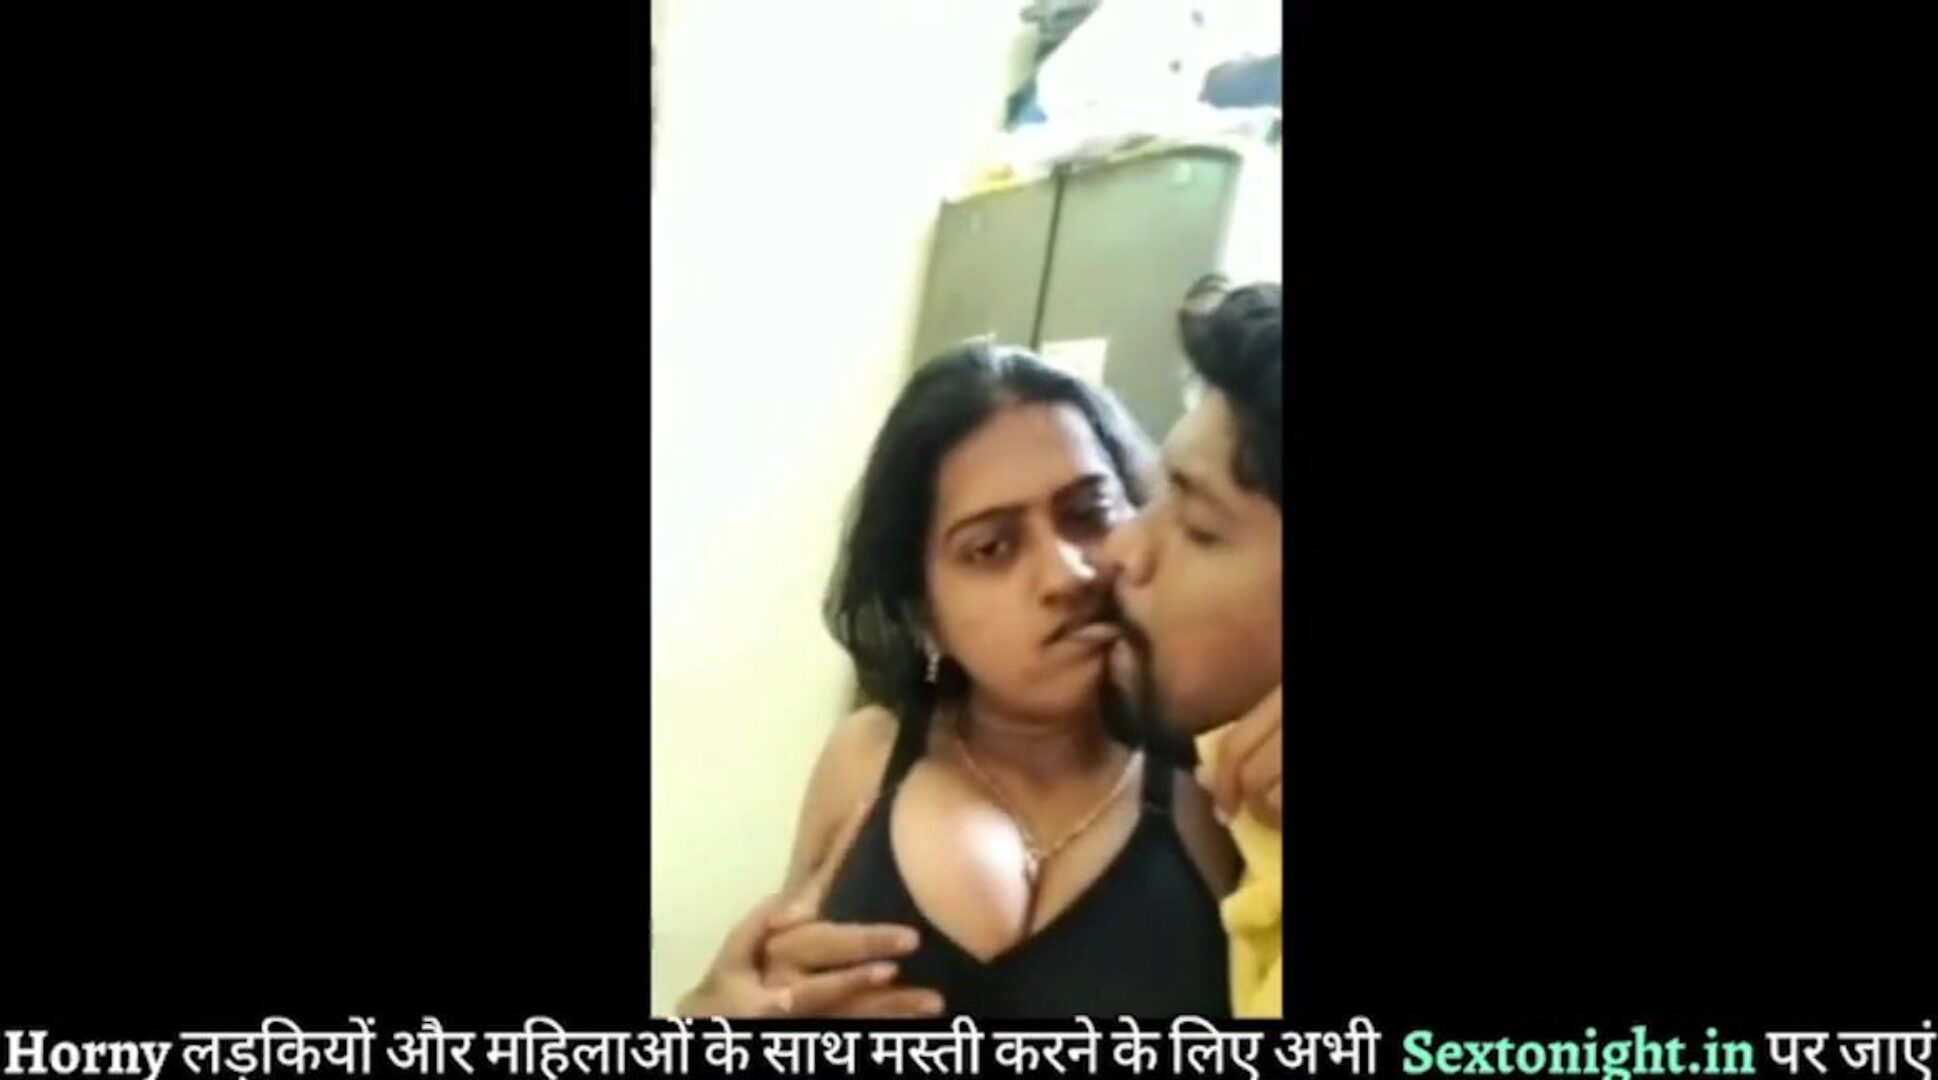 Devar and Bhabhi Have Sex During Lockdown Part 3 Porn 7a Watch Devar and Bhabhi Have Sex During Lockdown Part three movie scene on xHamster - the ultimate bevy of free Indian New Sex Xxx HD xxx porn tube movies